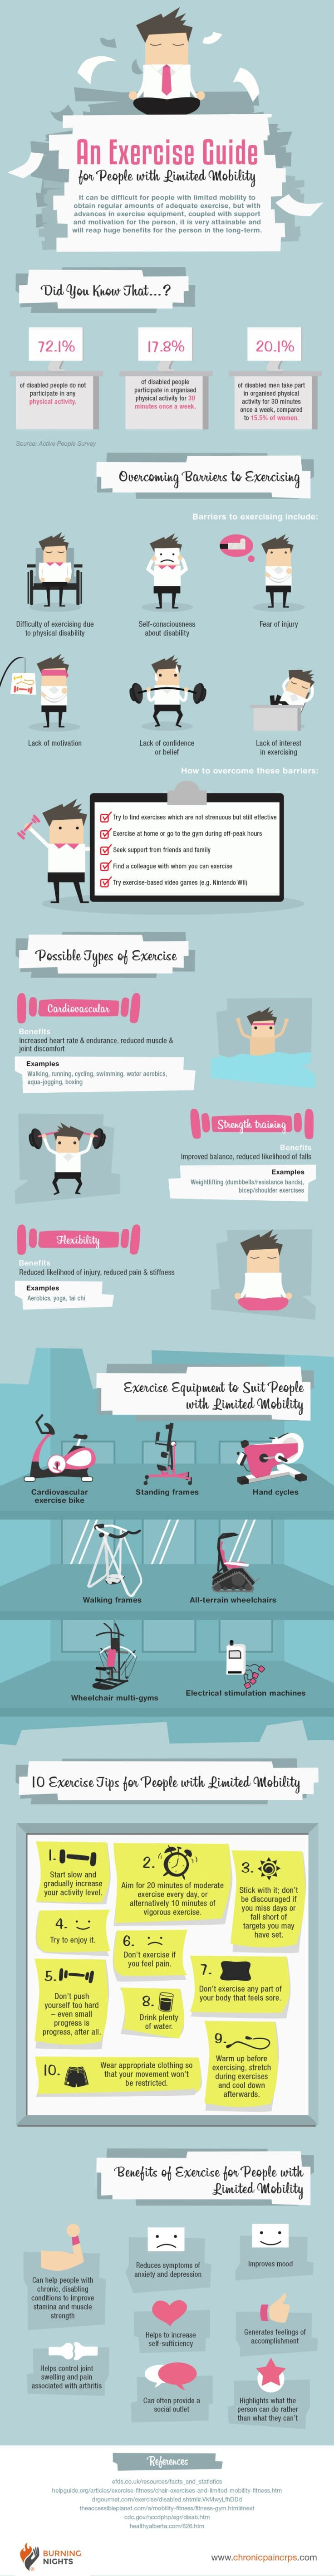 An Exercise Guide for People with Limited Mobility Infographic